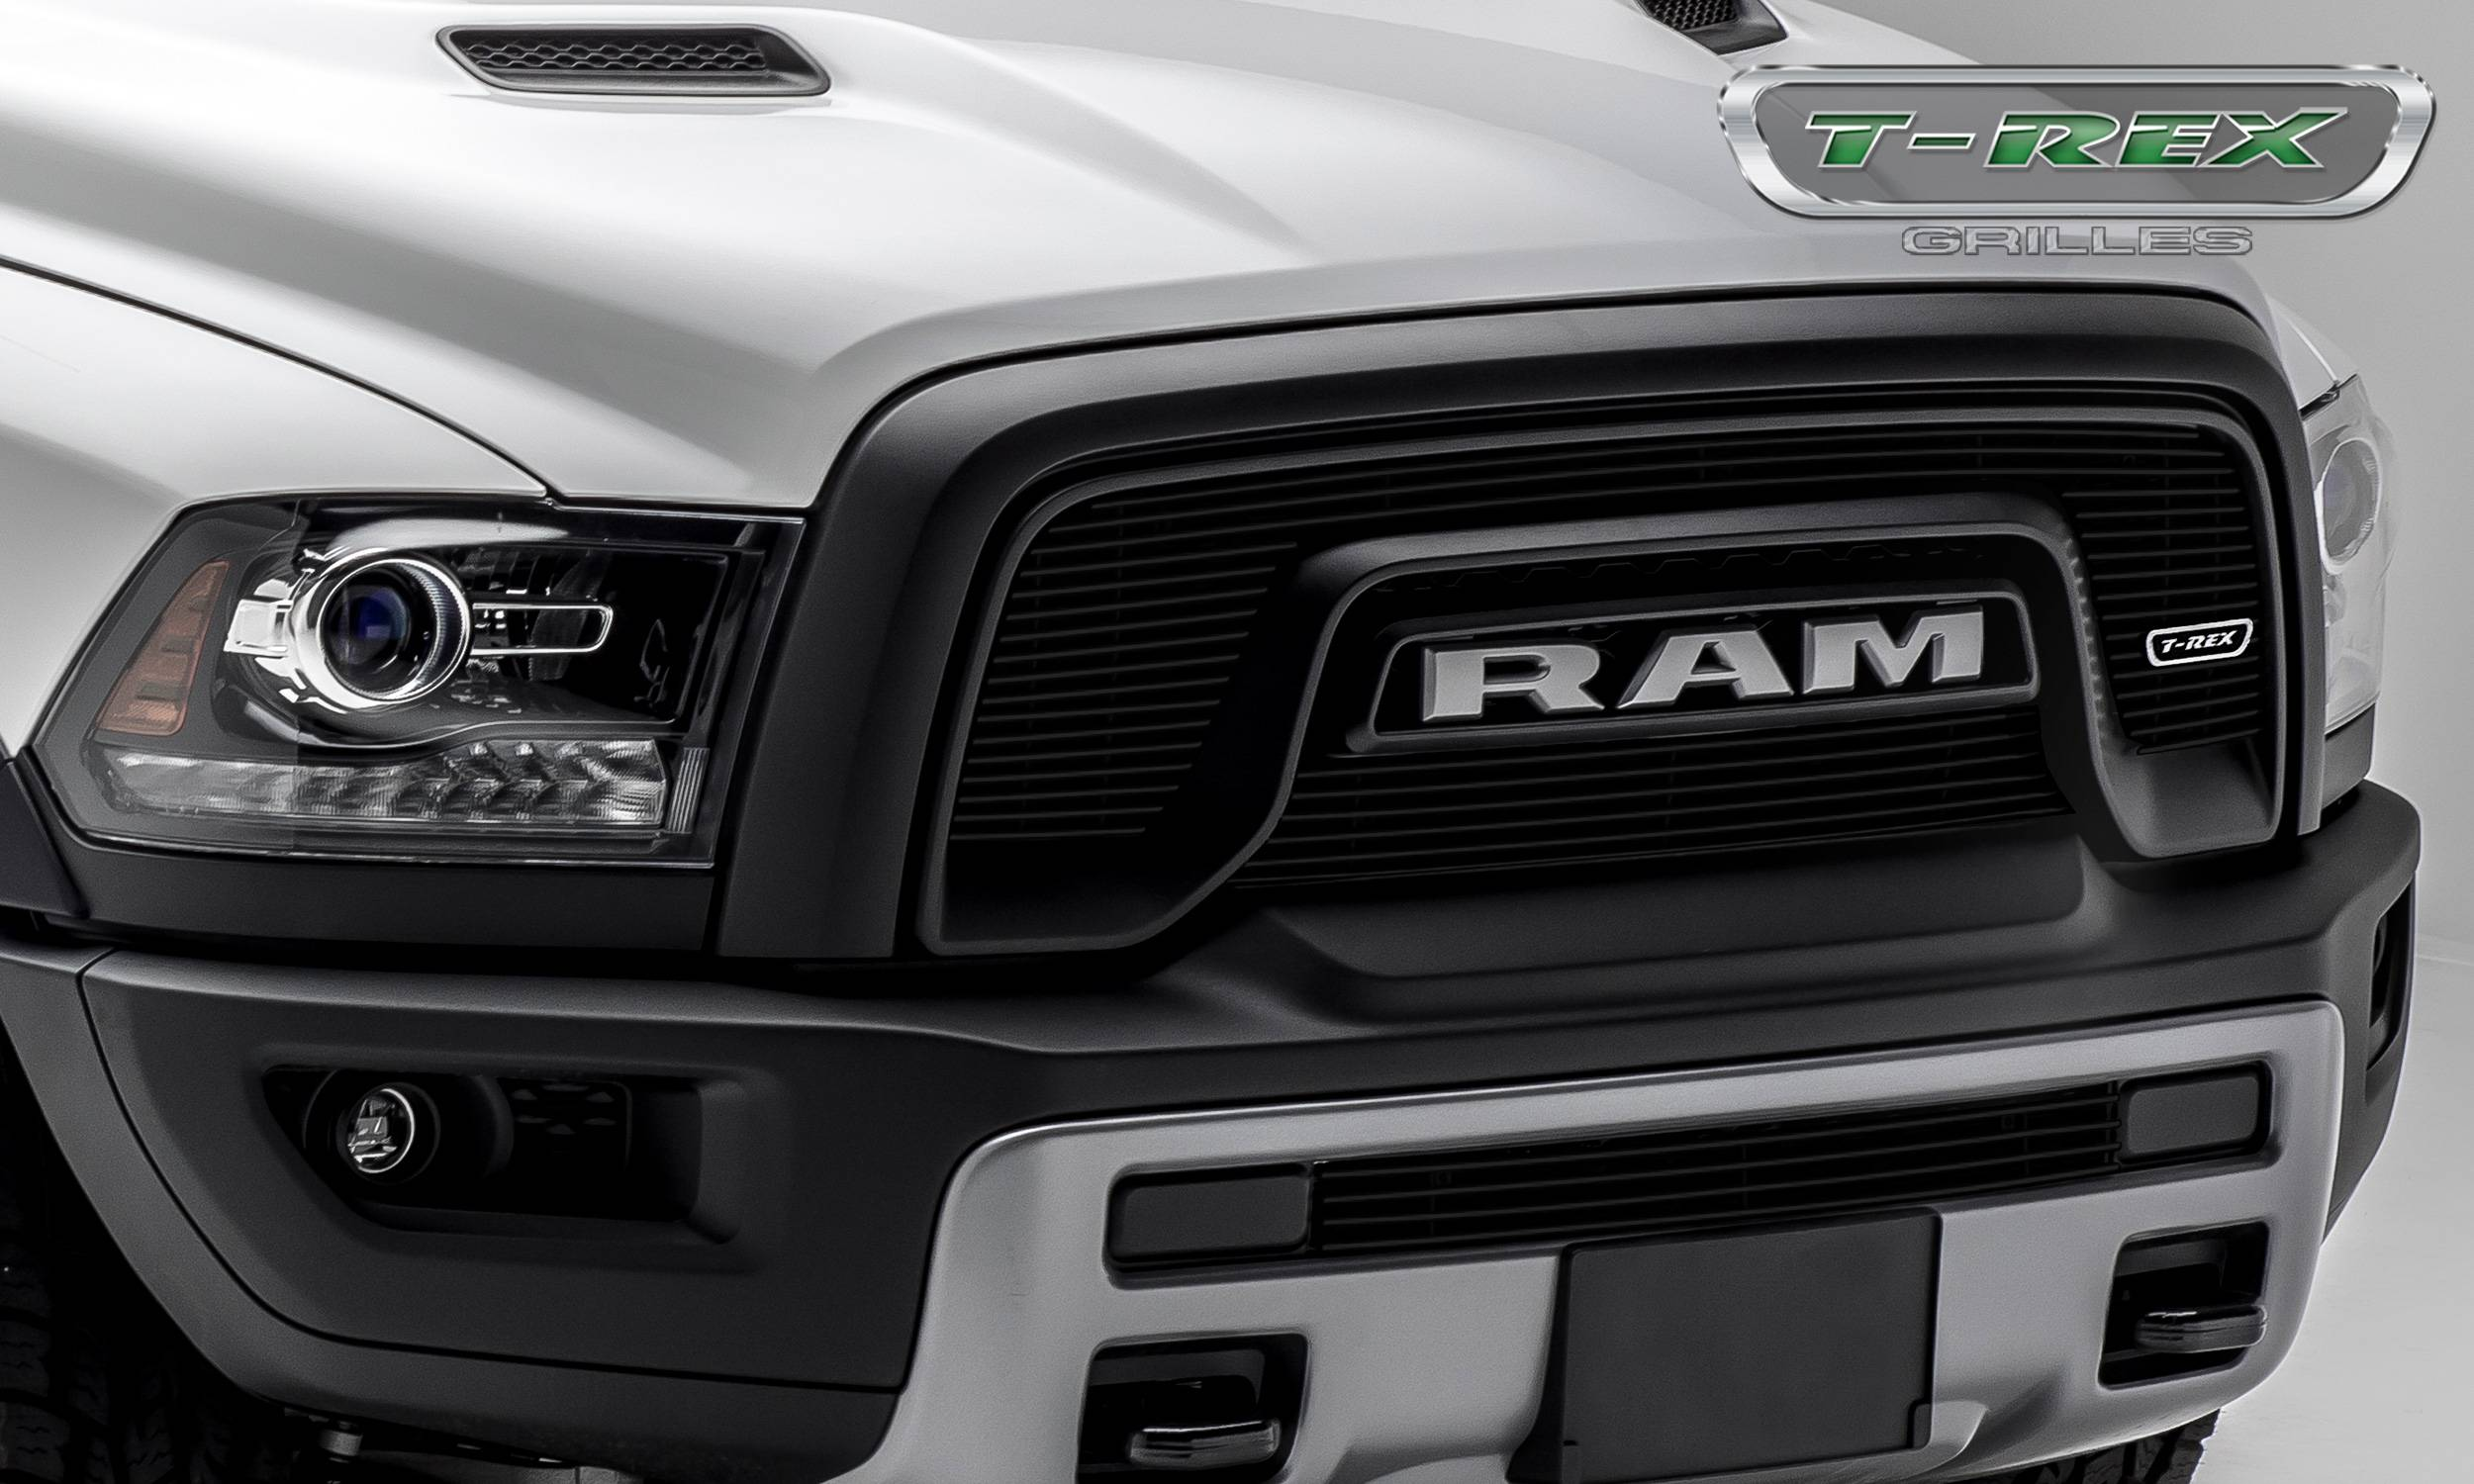 T-REX Ram Rebel - Billet Series - 2 Pc. Main Grille Overlay - Laser Cut Aluminum w/ Black Powder Coated Finish - Part #6214641